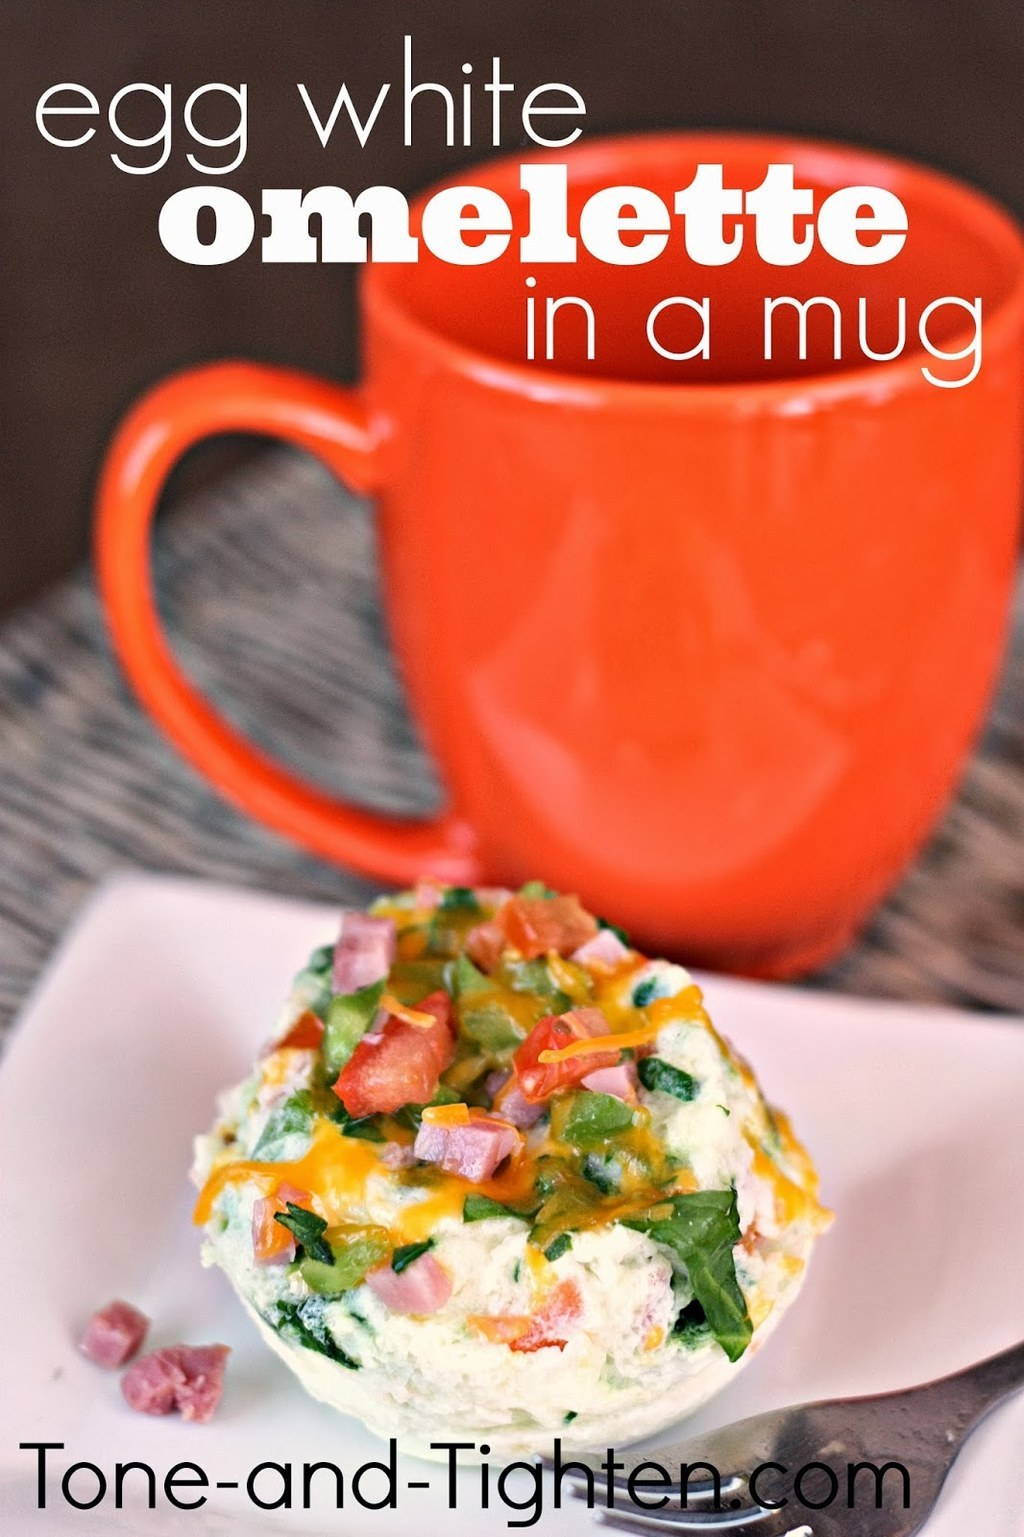 19 Breakfasts You Can Make In A Mug